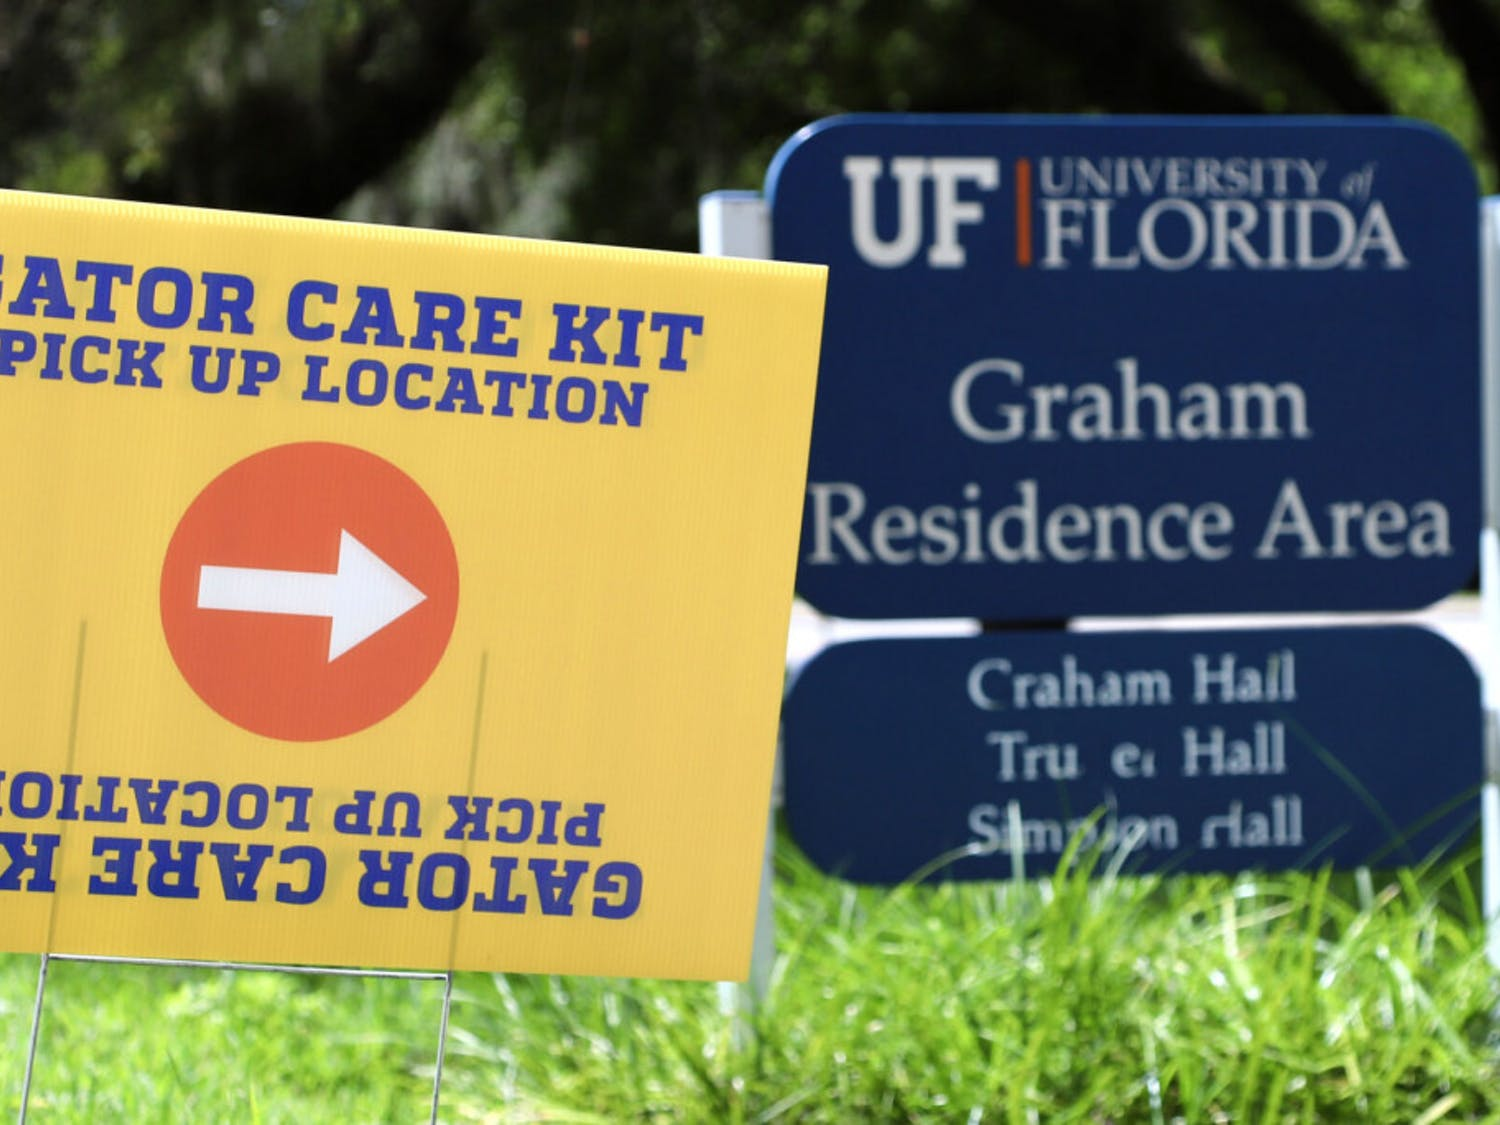 Gator Care Kits and UF 24 t-shirts are seen on August 26, 2020 at various locations to UF students on campus through October 2. Kits include two masks, hand sanitizer, antibacterial wipes, tissues, a stylus pen and a GatorWell first-aid pack with the option of a thermometer or anti-fog spray.